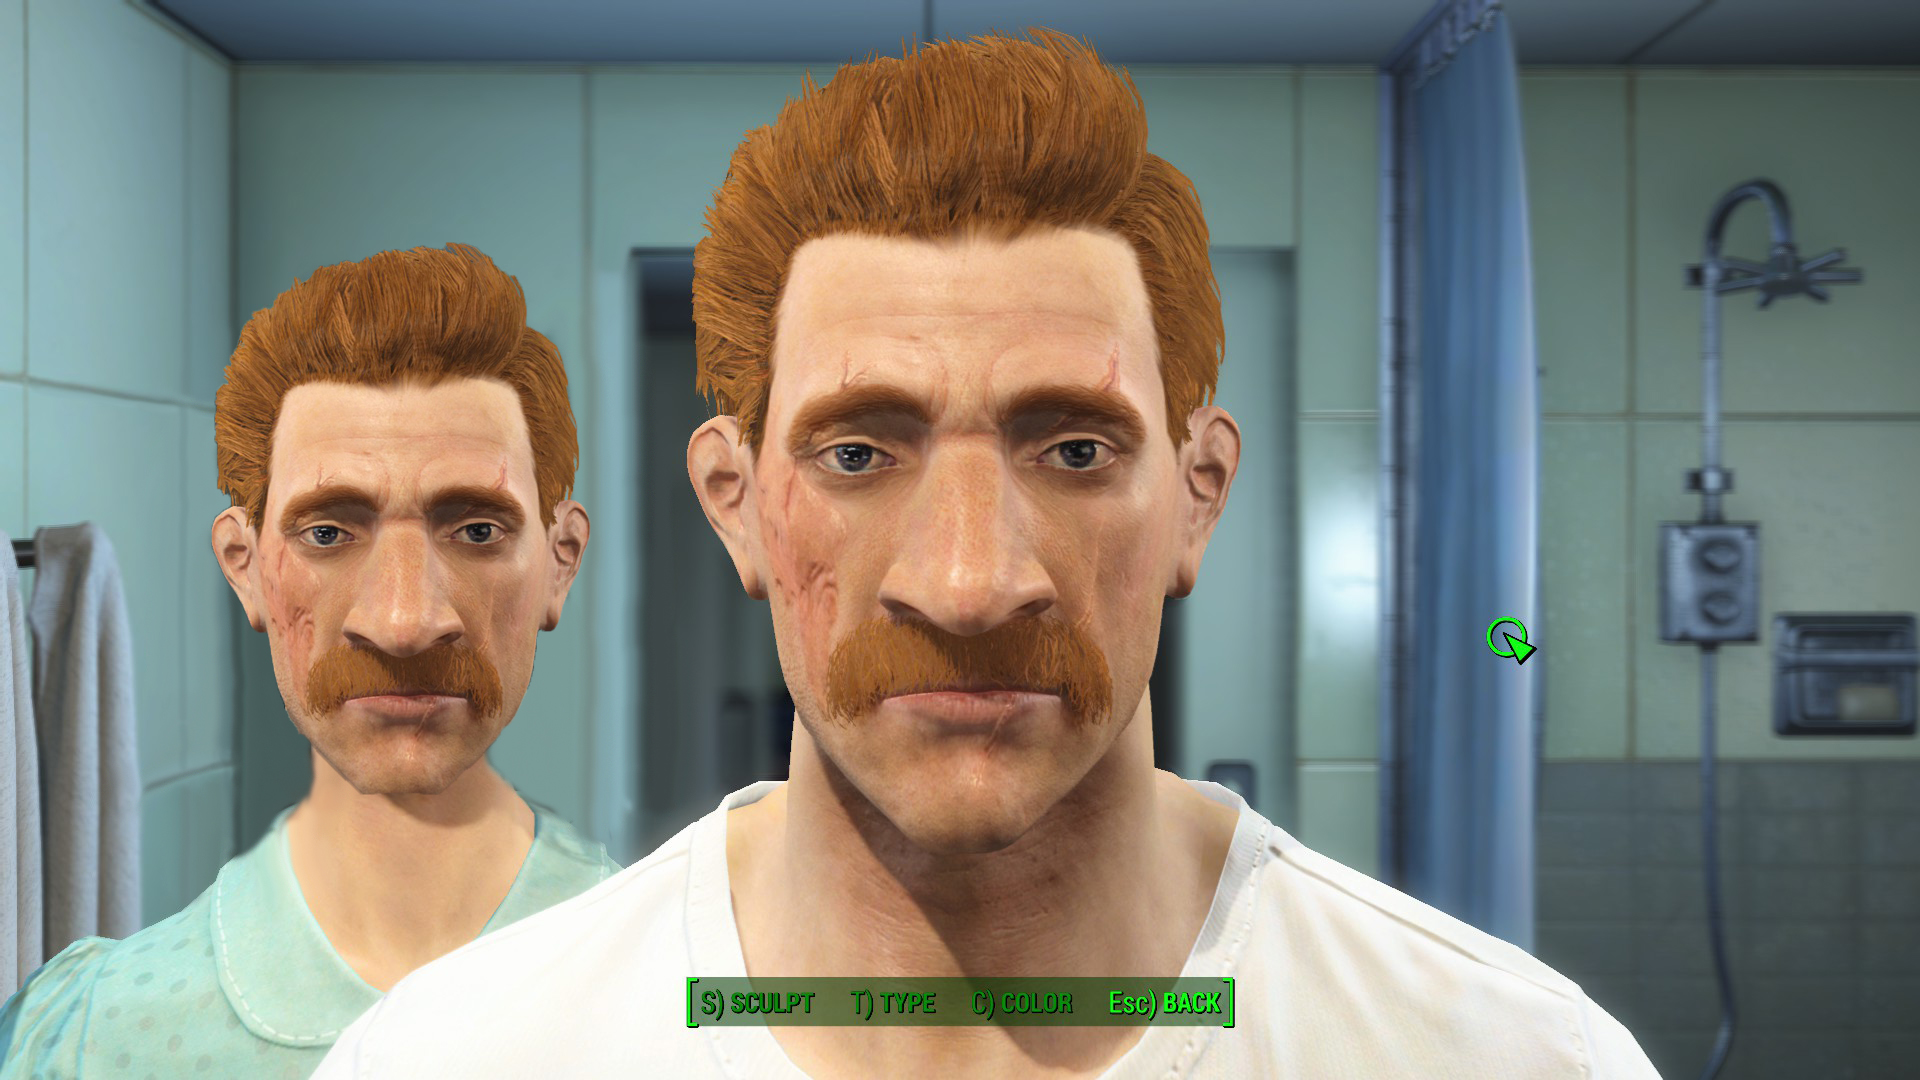 Fixed | Fallout 4 Character Creations | Know Your Meme